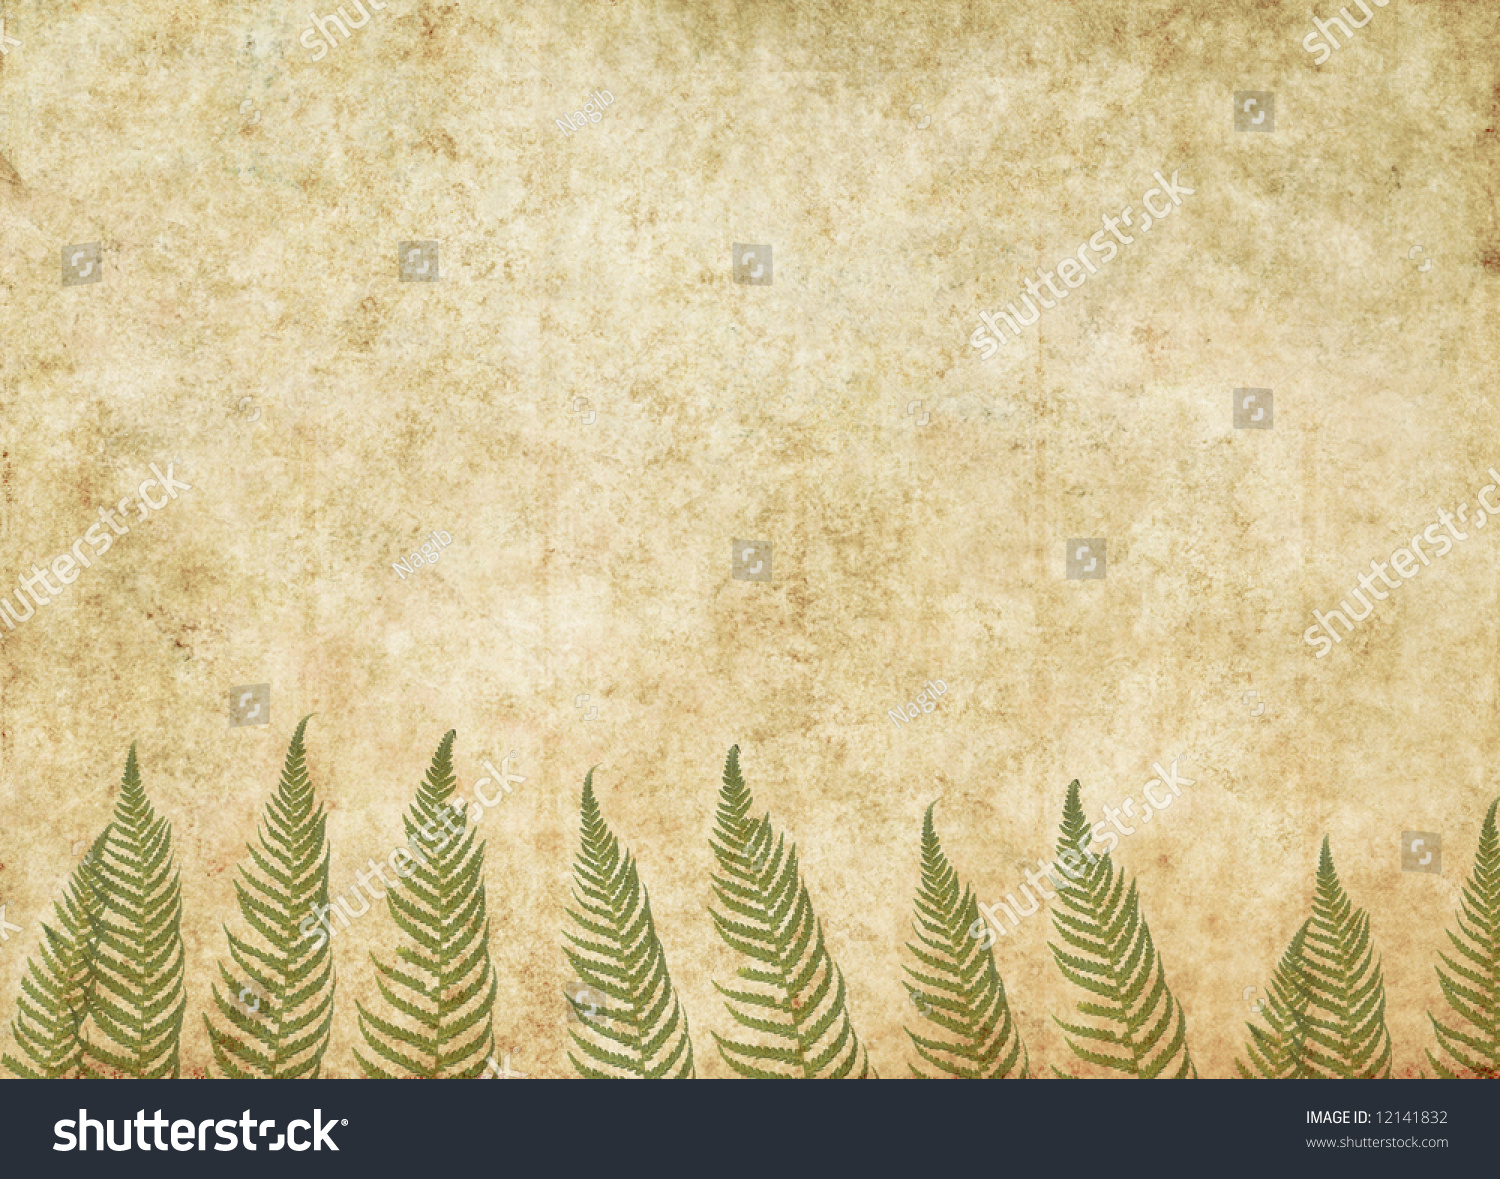 Lovely Brown Background Image With Interesting Texture ... - photo#47